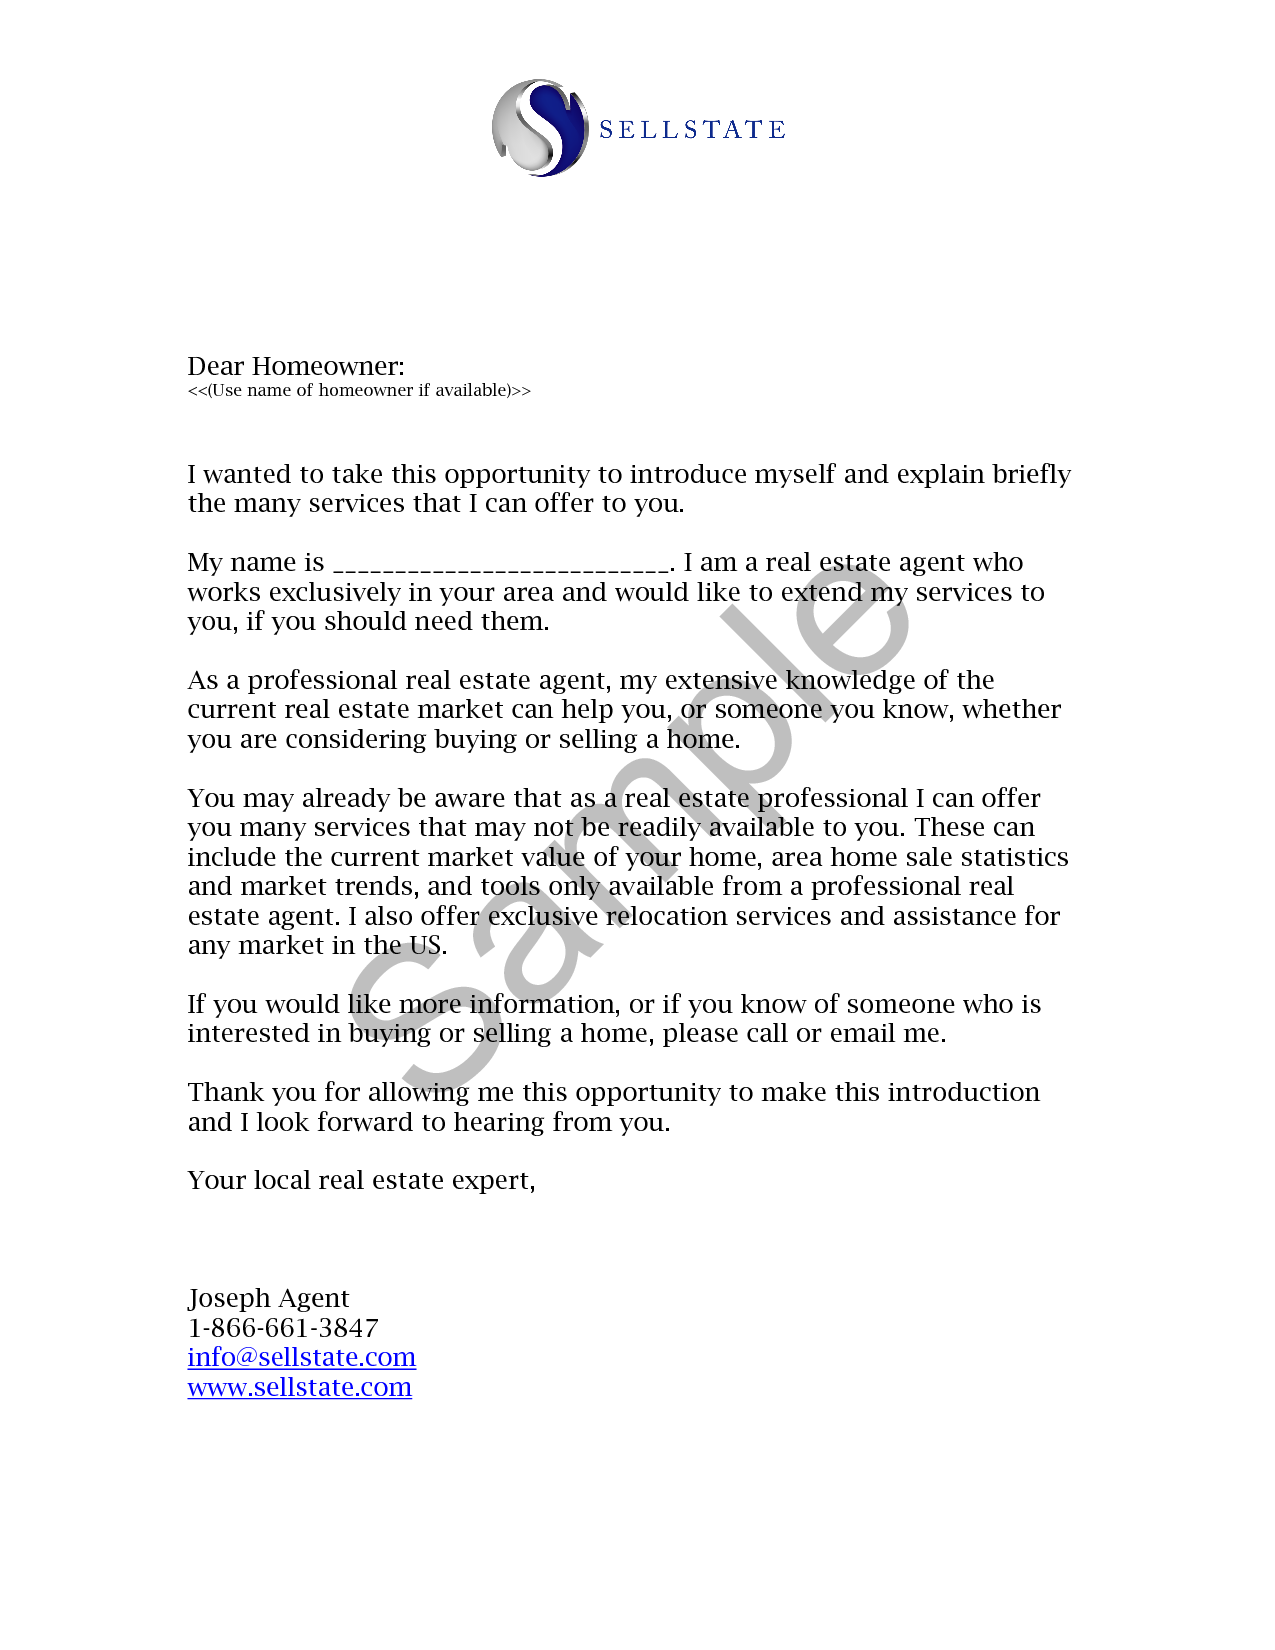 Real Estate Letters of Introduction Introduction Letter Real ...